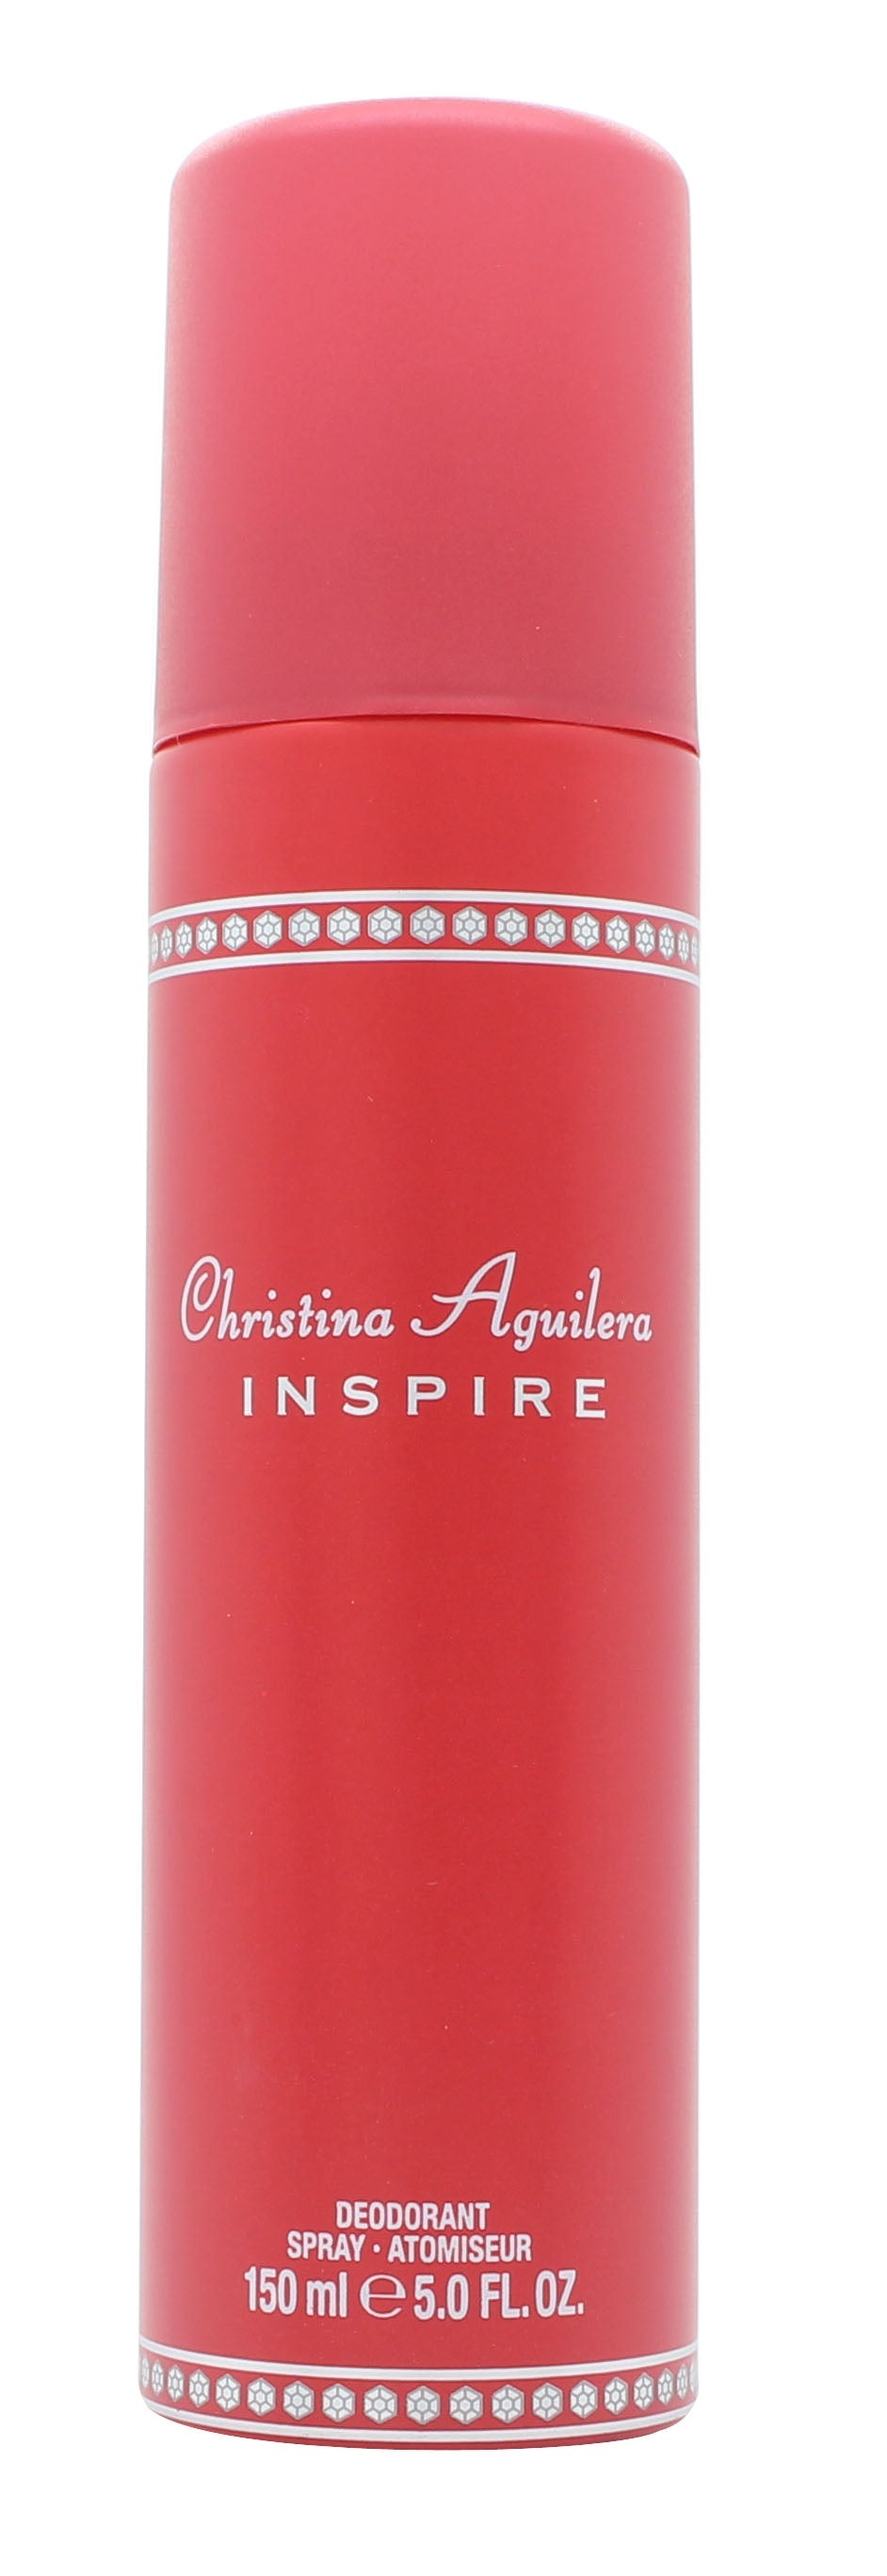 Christina Aguilera Inspire Deodorant Spray 150ml